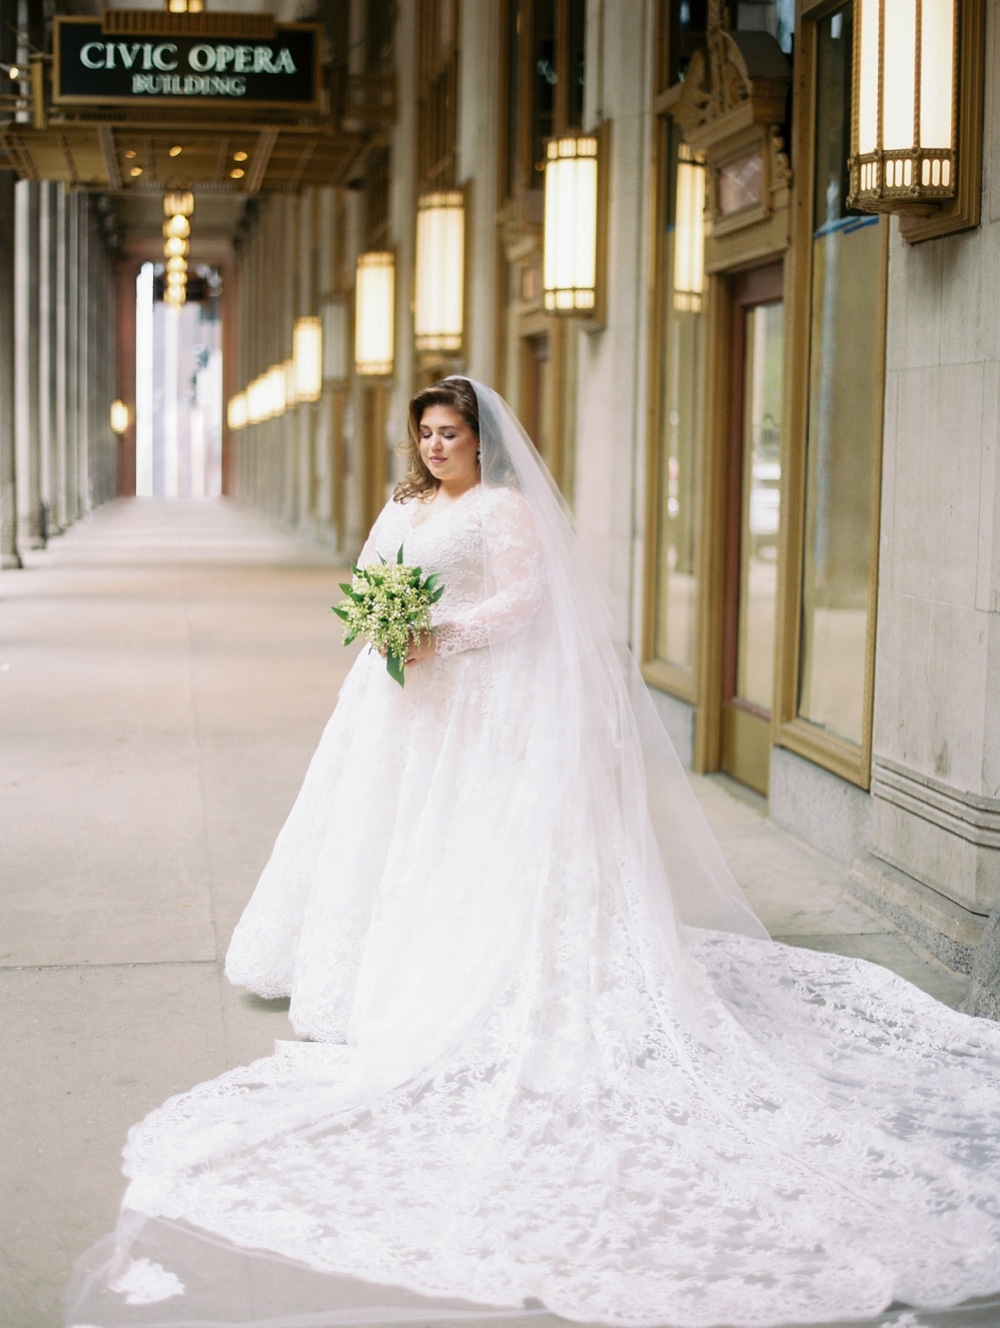 kristin-la-voie-photography-drake-hotel-chicago-wedding-photographer-28